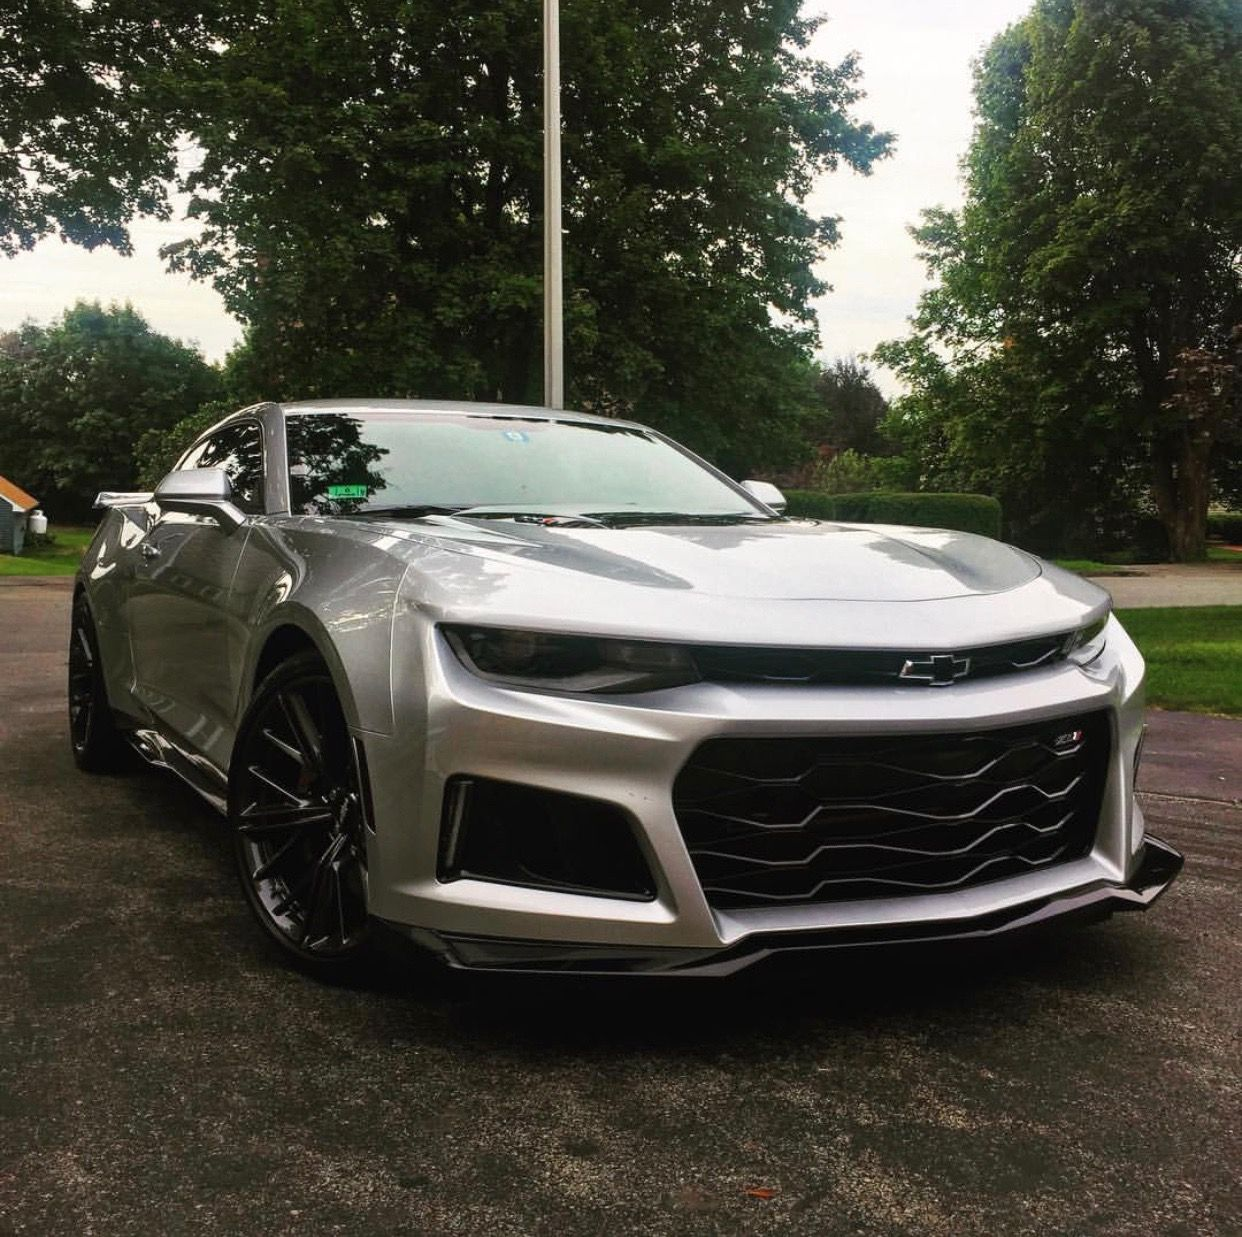 Chevrolet Camaro Zl1 Painted In Silver Ice Metallic Photo Taken By